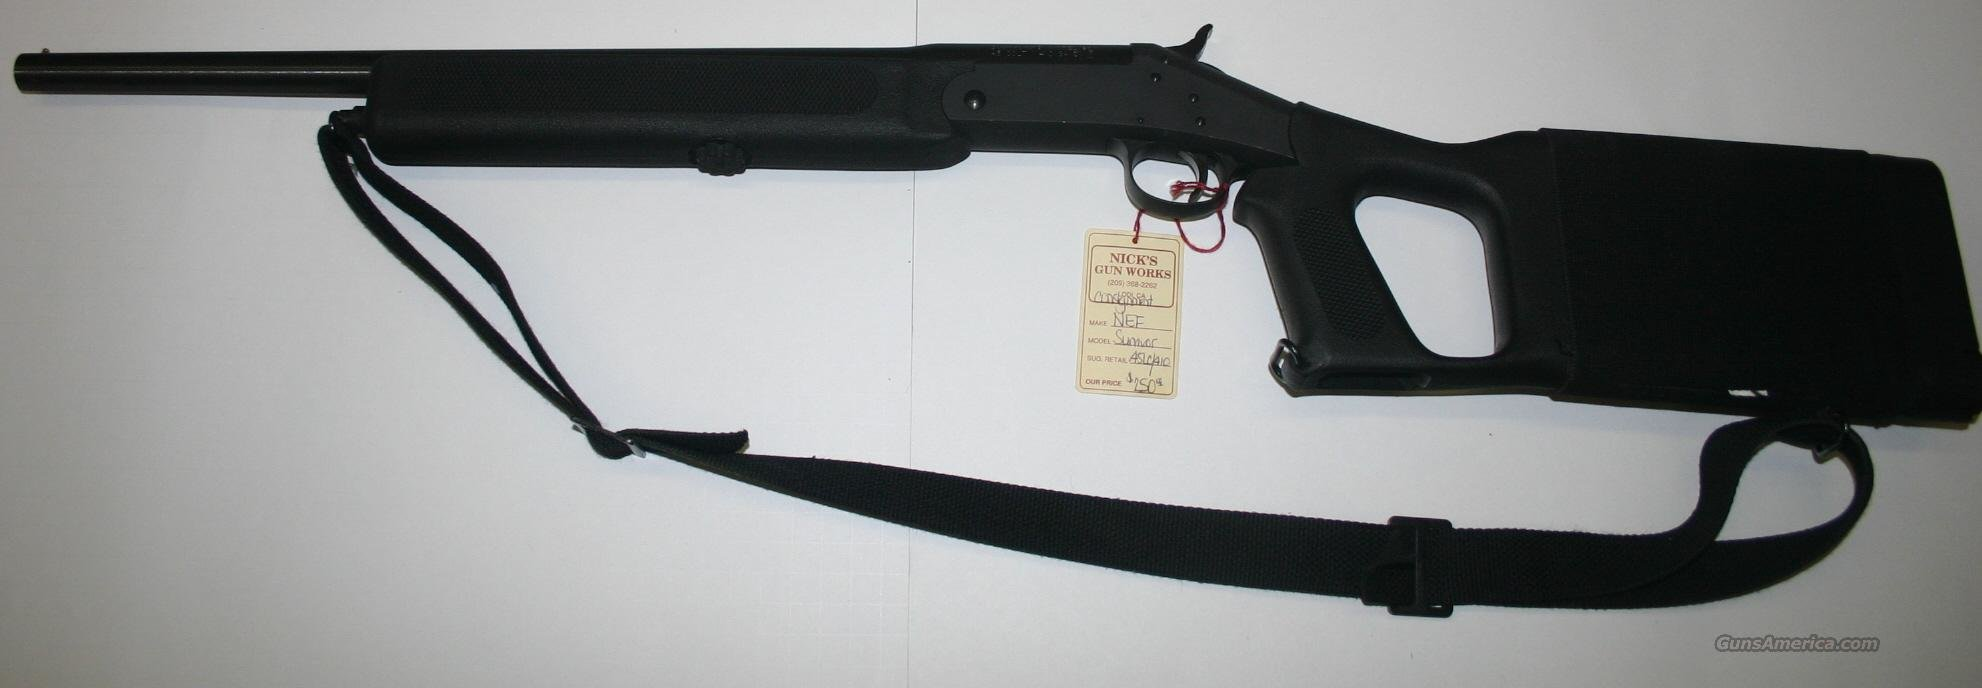 NEF Survivor .45LC/.410  Guns > Shotguns > New England Firearms (NEF) Shotguns